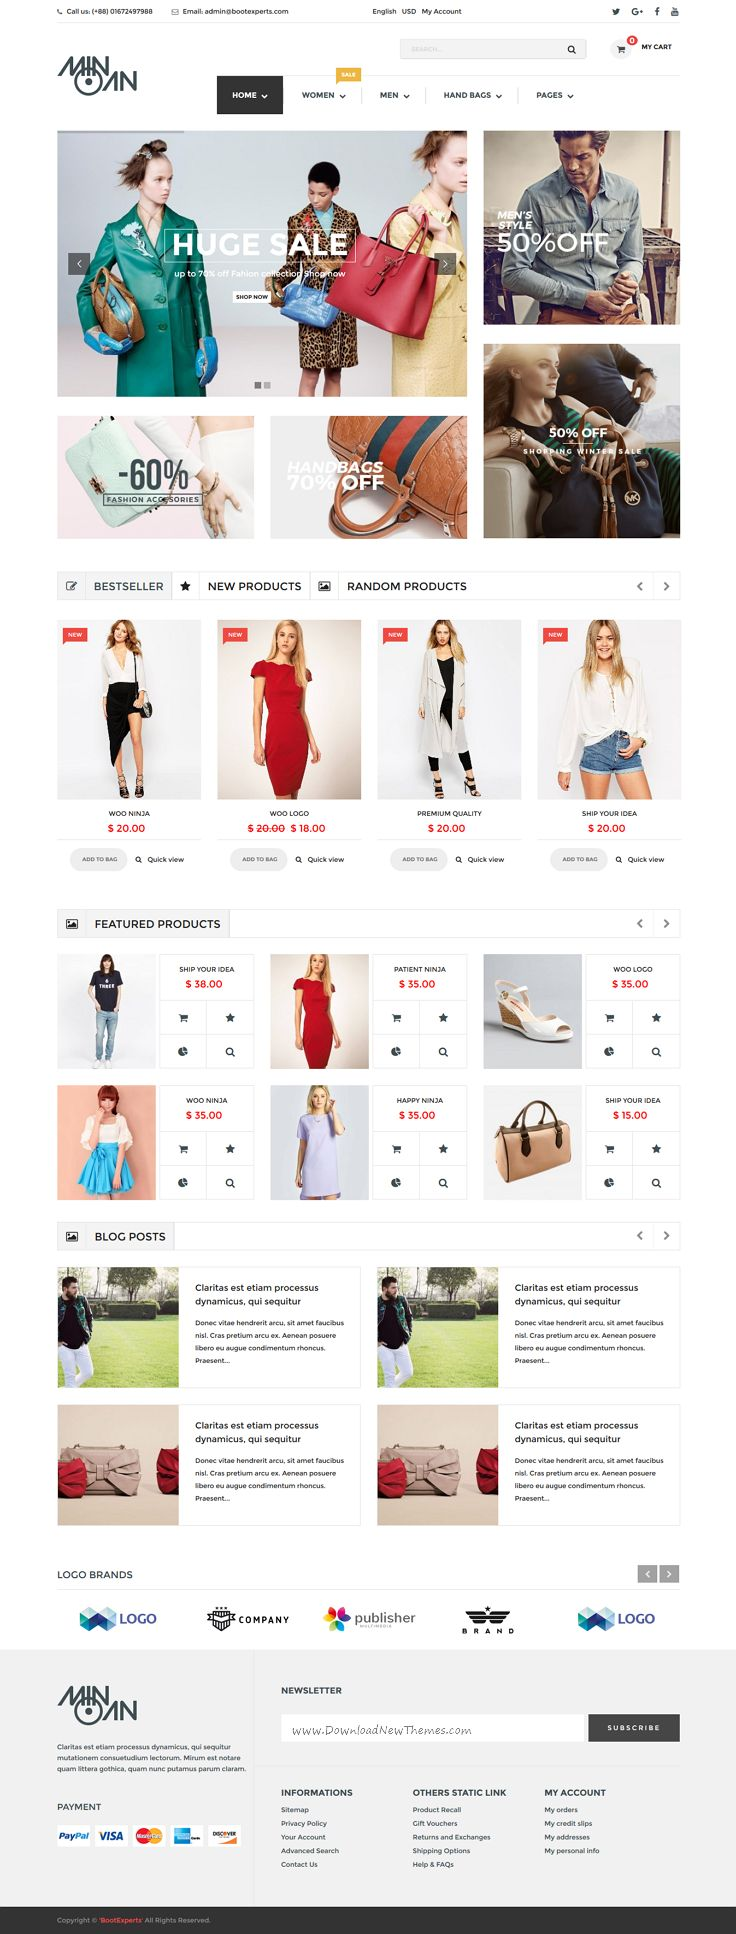 Minoan is a clean and elegant design WordPress WooCommerce Theme for multipurpose eCommerce website with 6+ stunning homepage layouts. Download Now➝ https://themeforest.net/item/minoan-fashion-woocommerce-theme/15766843?ref=Datasata